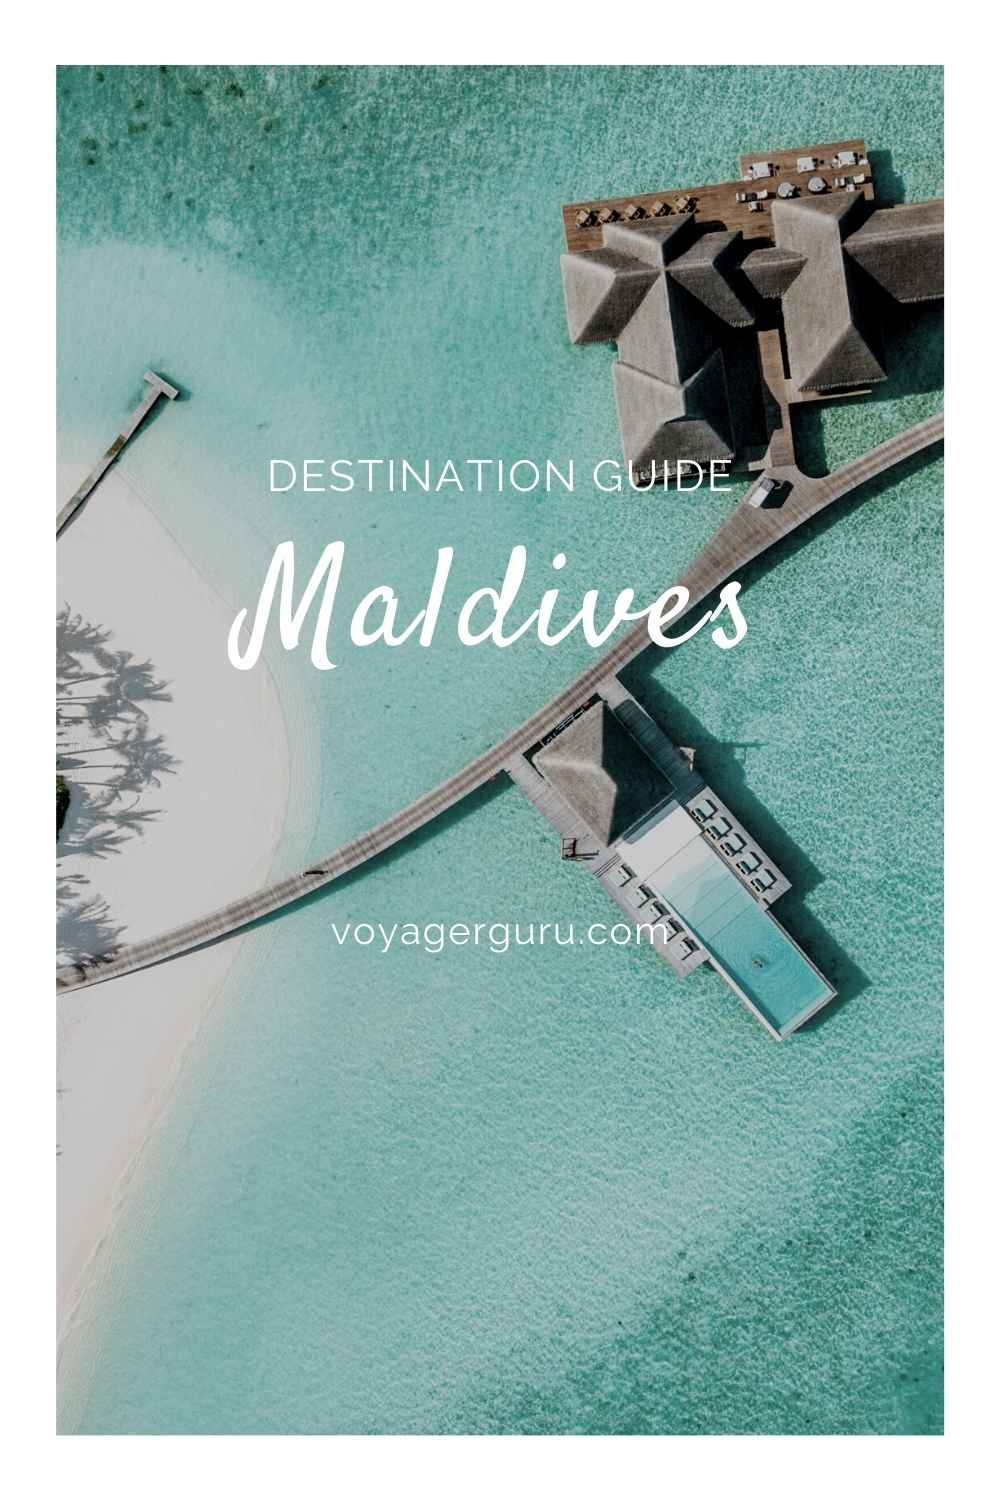 maldives destination guide pin 1